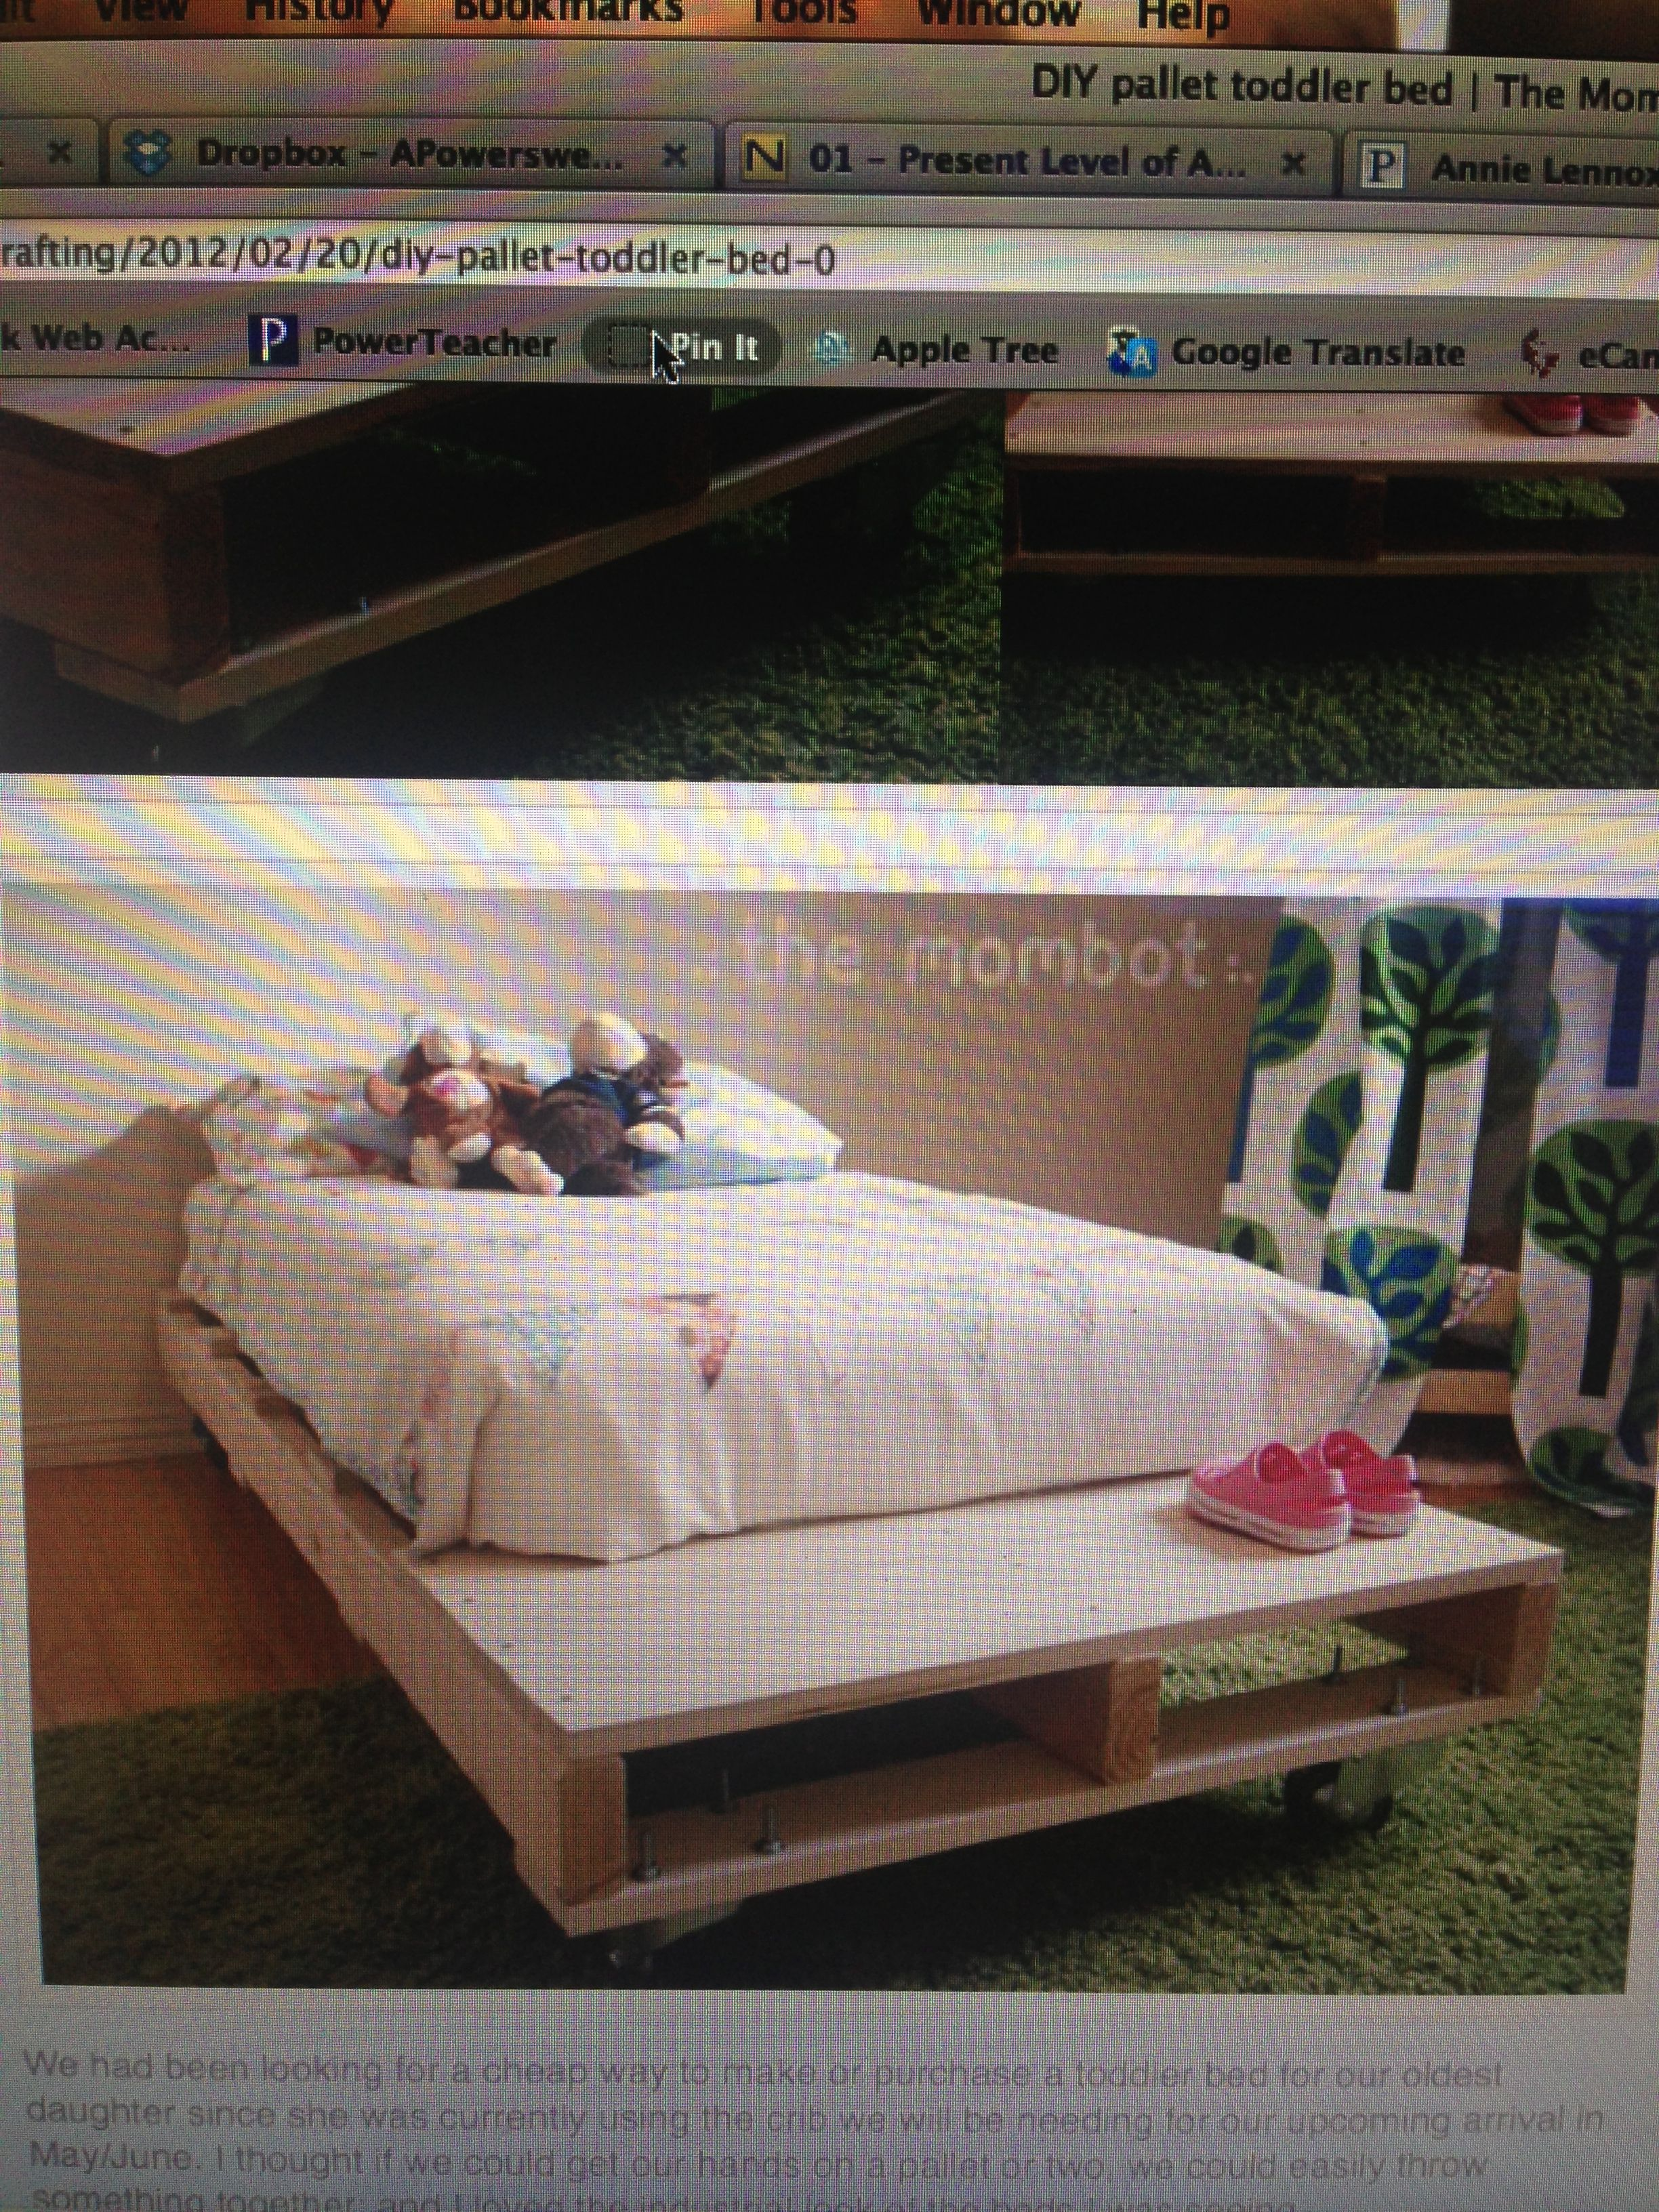 faux pallet toddler bed on casters.  themombot.com/crafting/2012/02/20/diy-pallet-toddler-bed-0